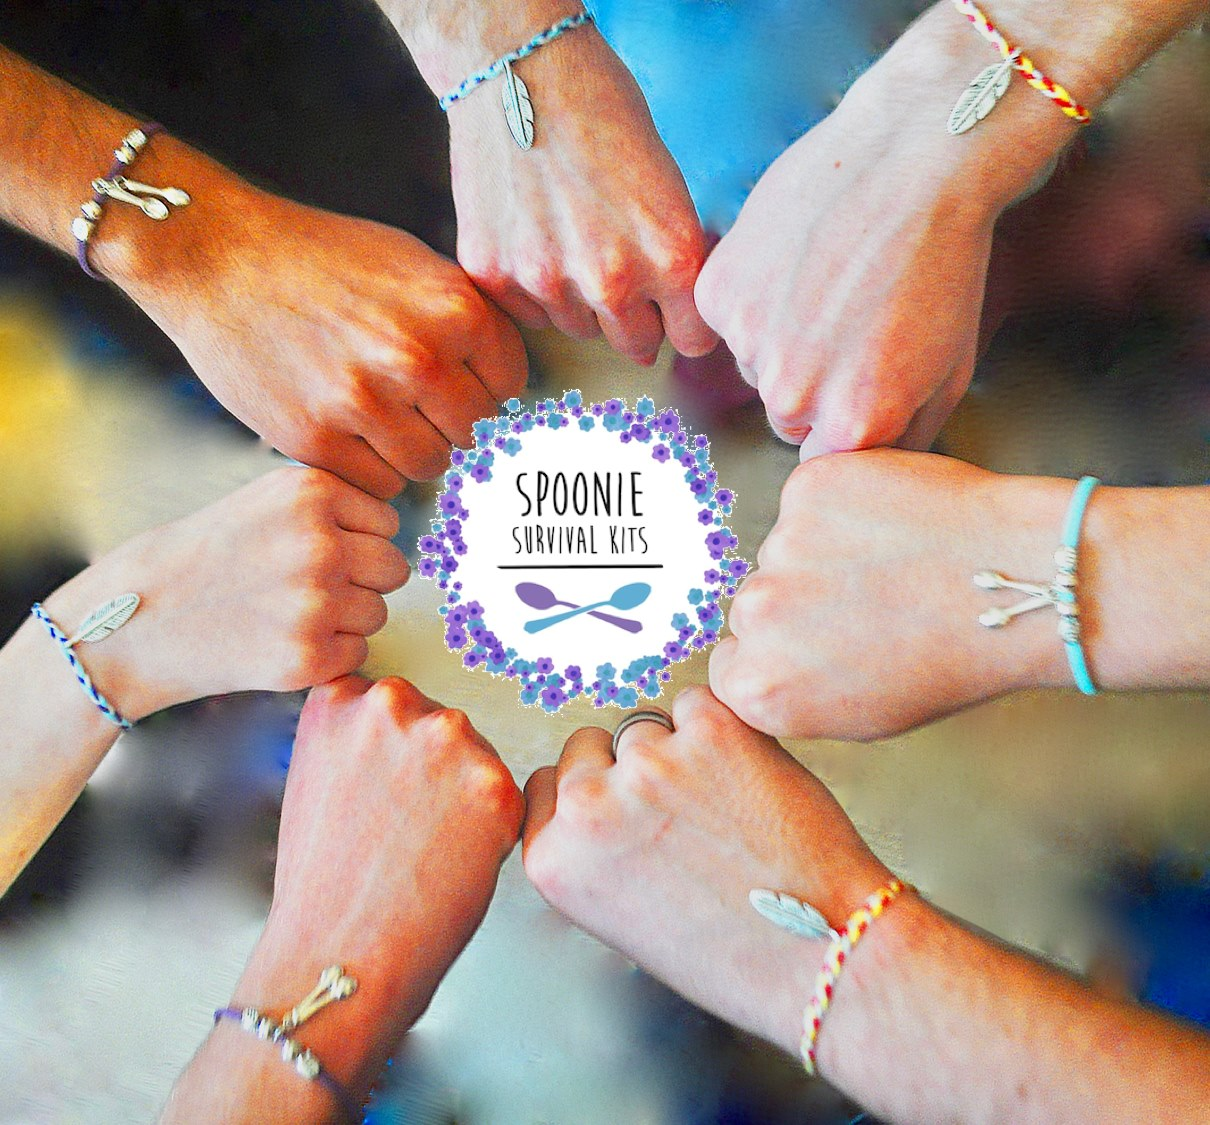 SSK logo surrounded by six hands meeting in the middle, all wearing SSK bracelets. image taken from above